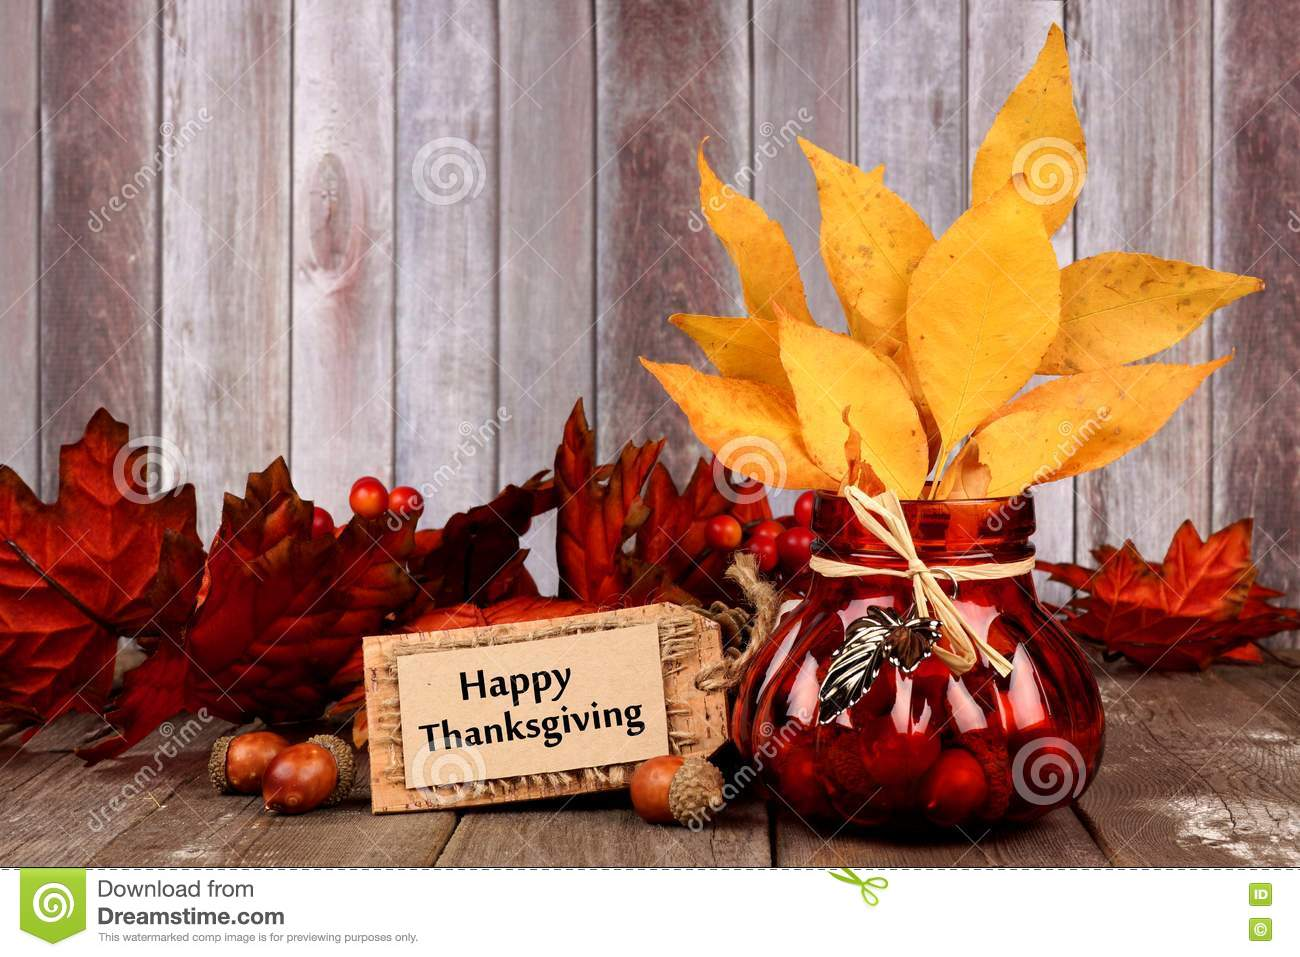 Download Autumn Still Life With Happy Thanksgiving Tag Leaves And Decor Stock Photo